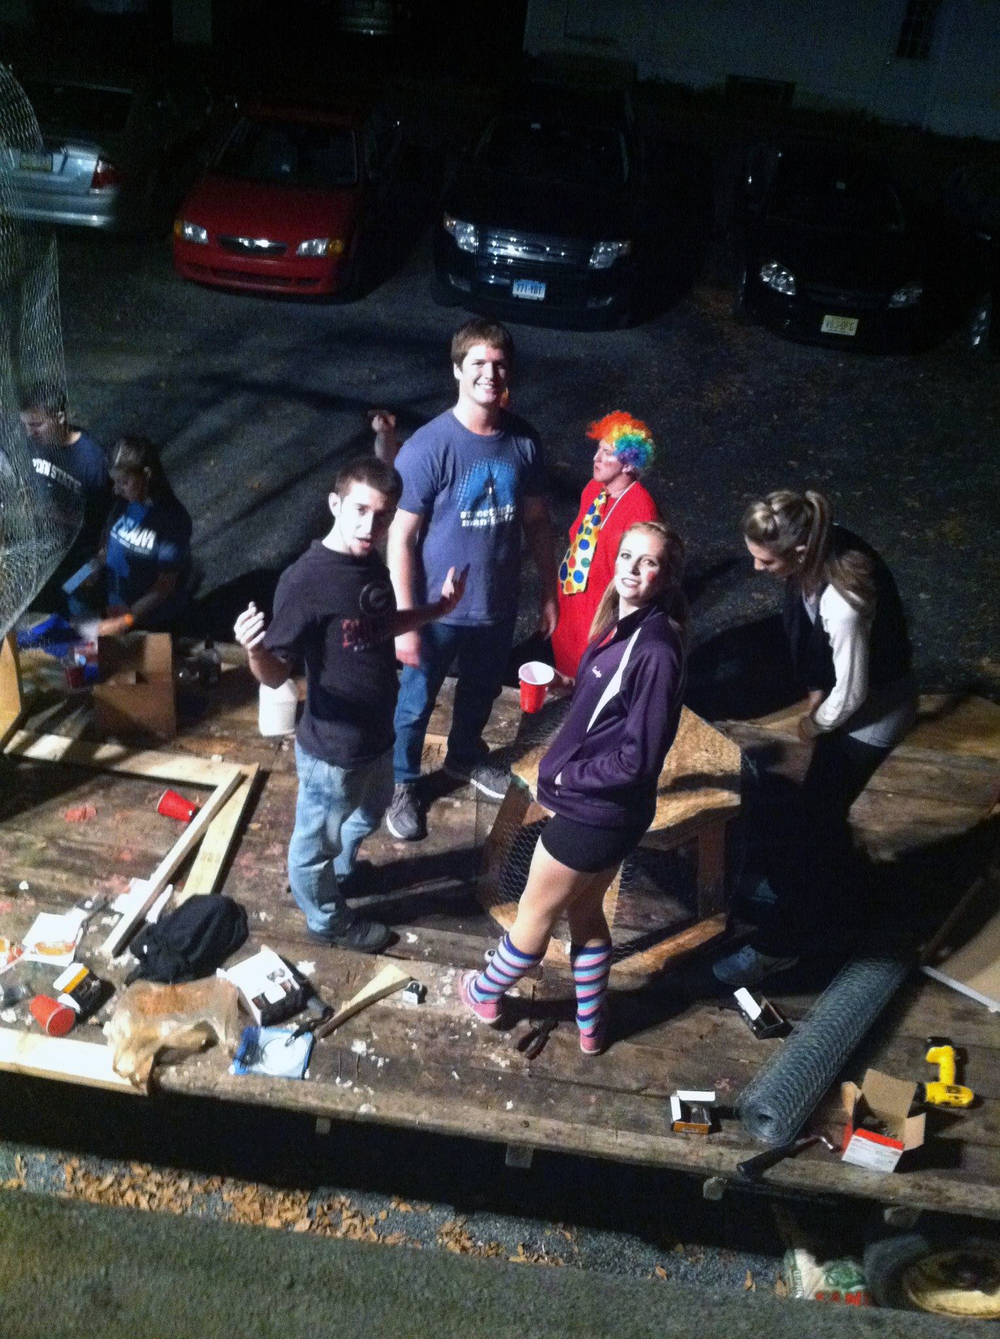 Homecoming 2013 preparations begin with float building - Sam Kulp, Ian Maxwell and Jerry Crompton - Oct. 8, 2013